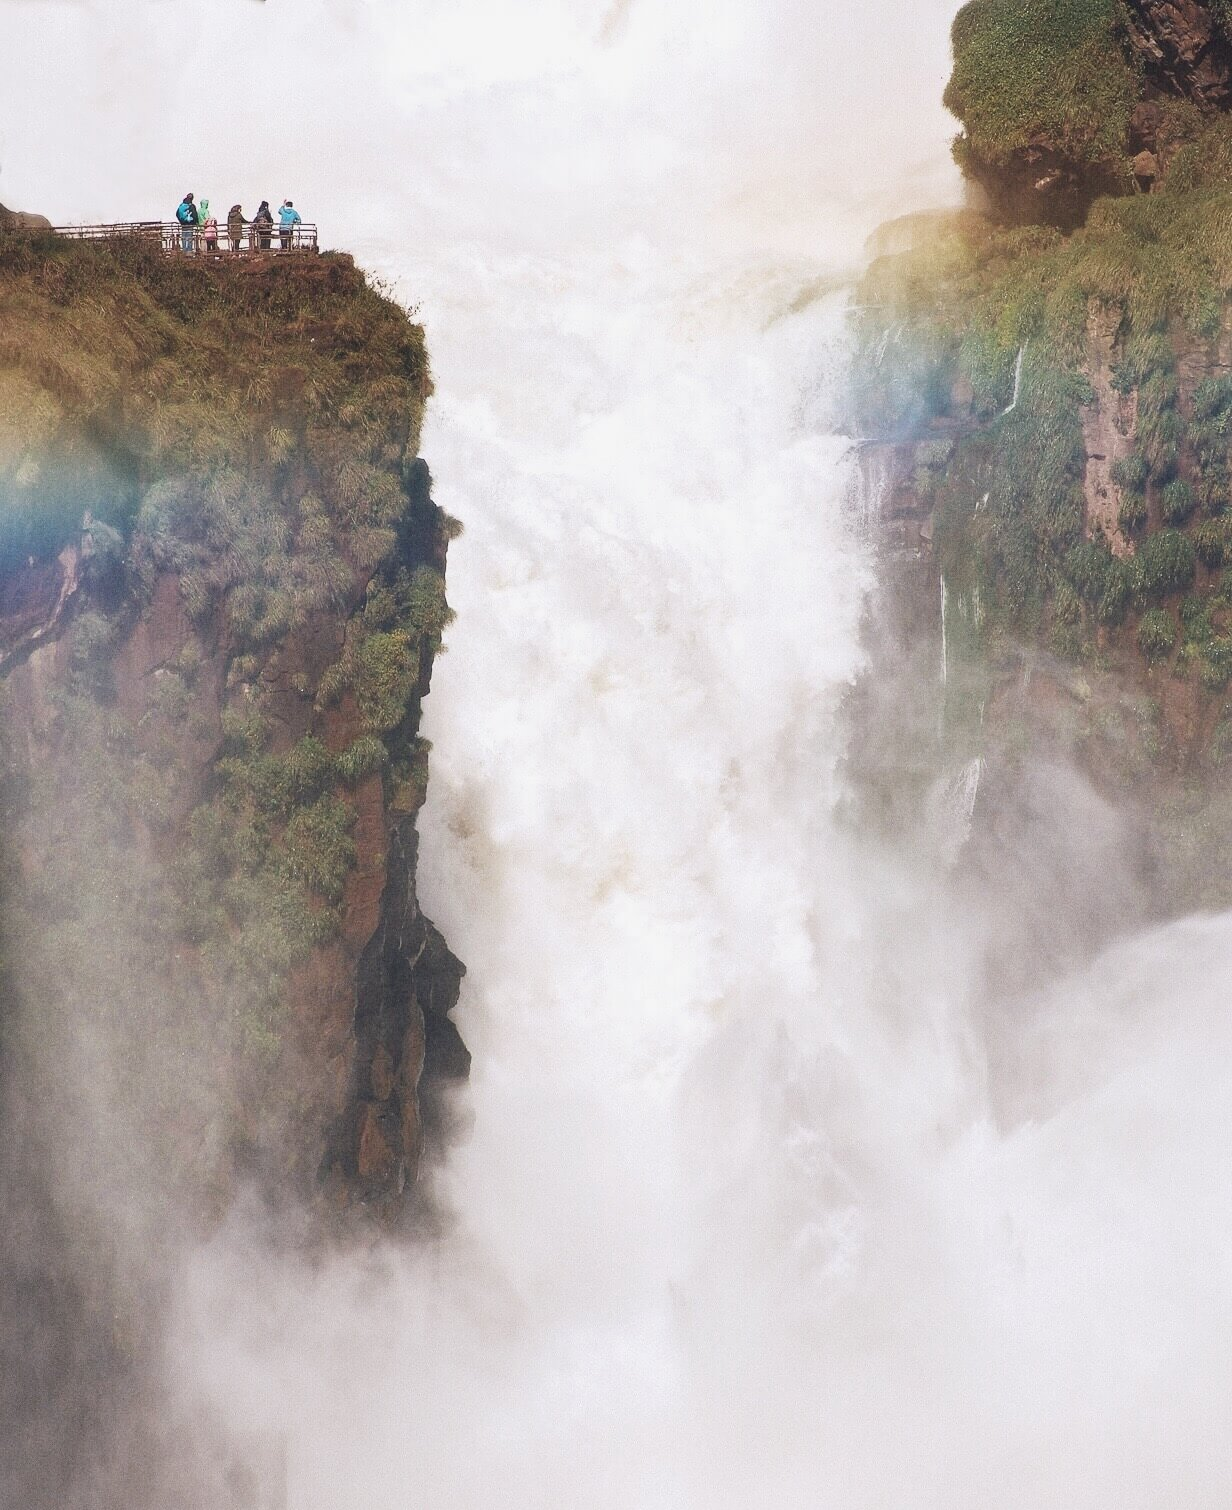 A huge, powerful waterfall with a large group of people standing on a platform directly next to it